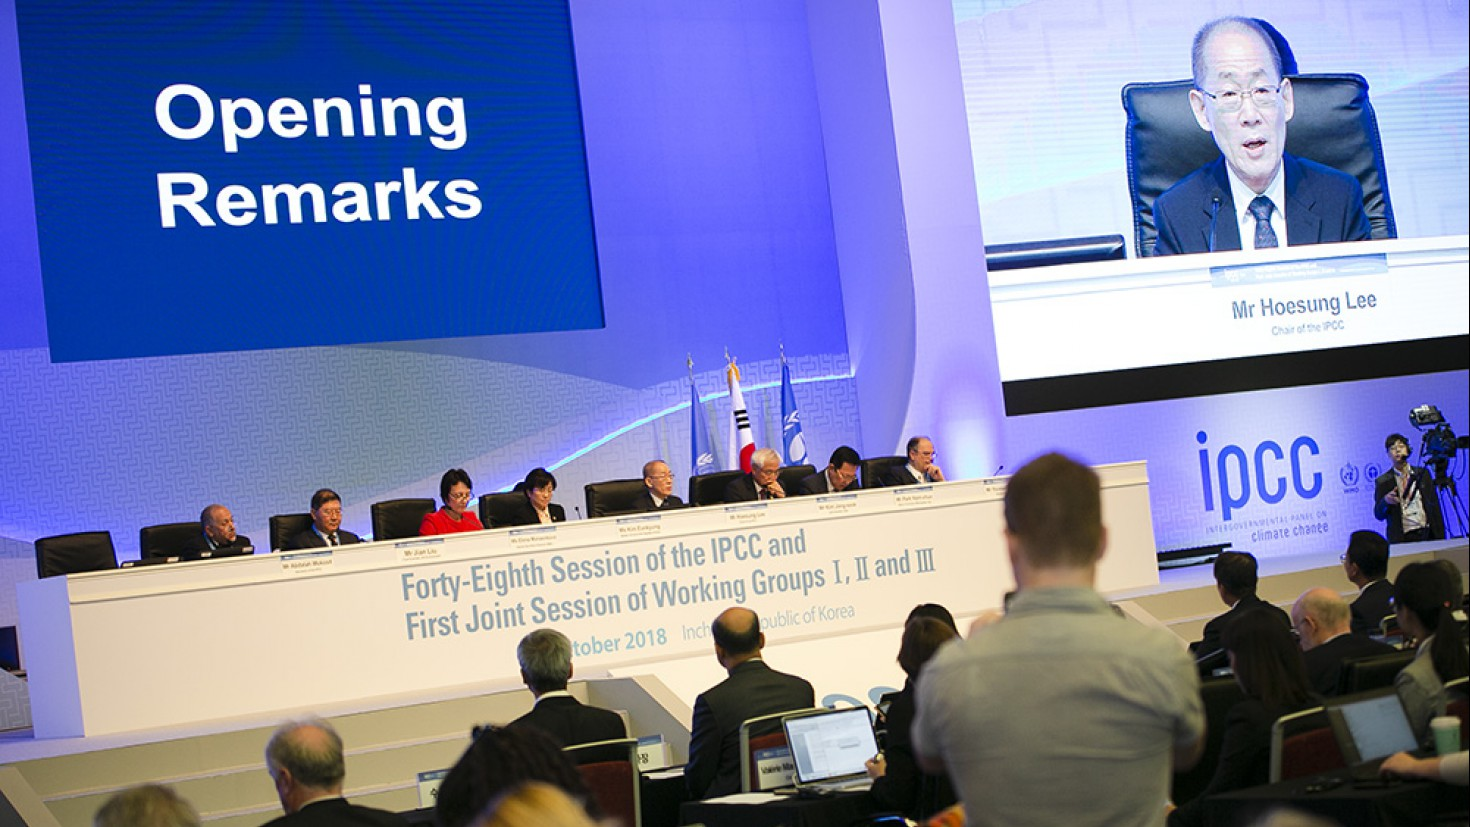 Hoesung Lee, IPCC Chair, giving opening remarks. foto: IISD/ENB